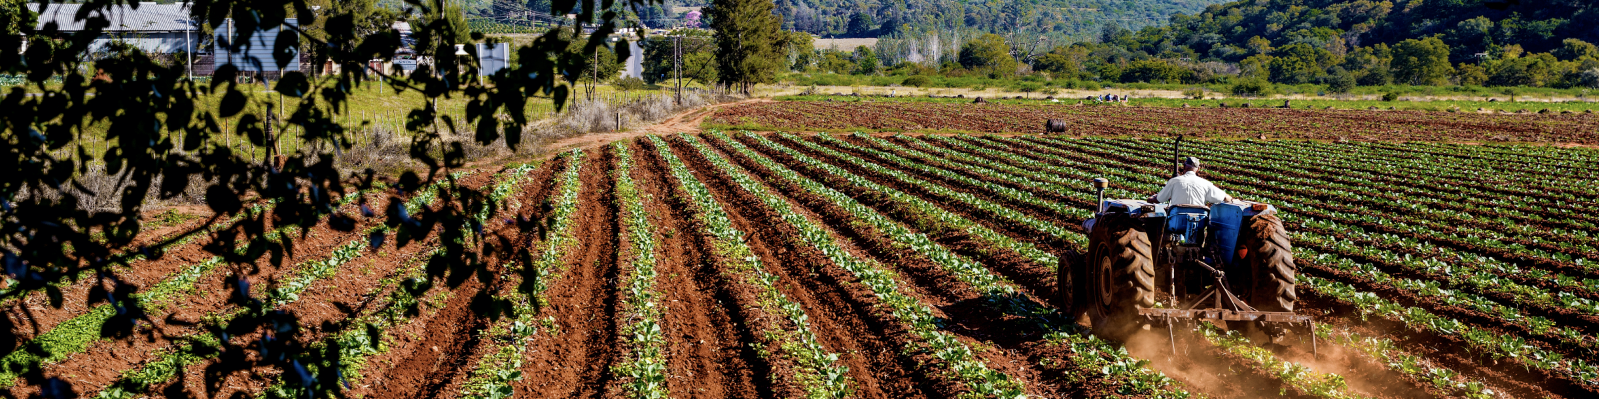 A tractor driving across rows of growing vegetation.